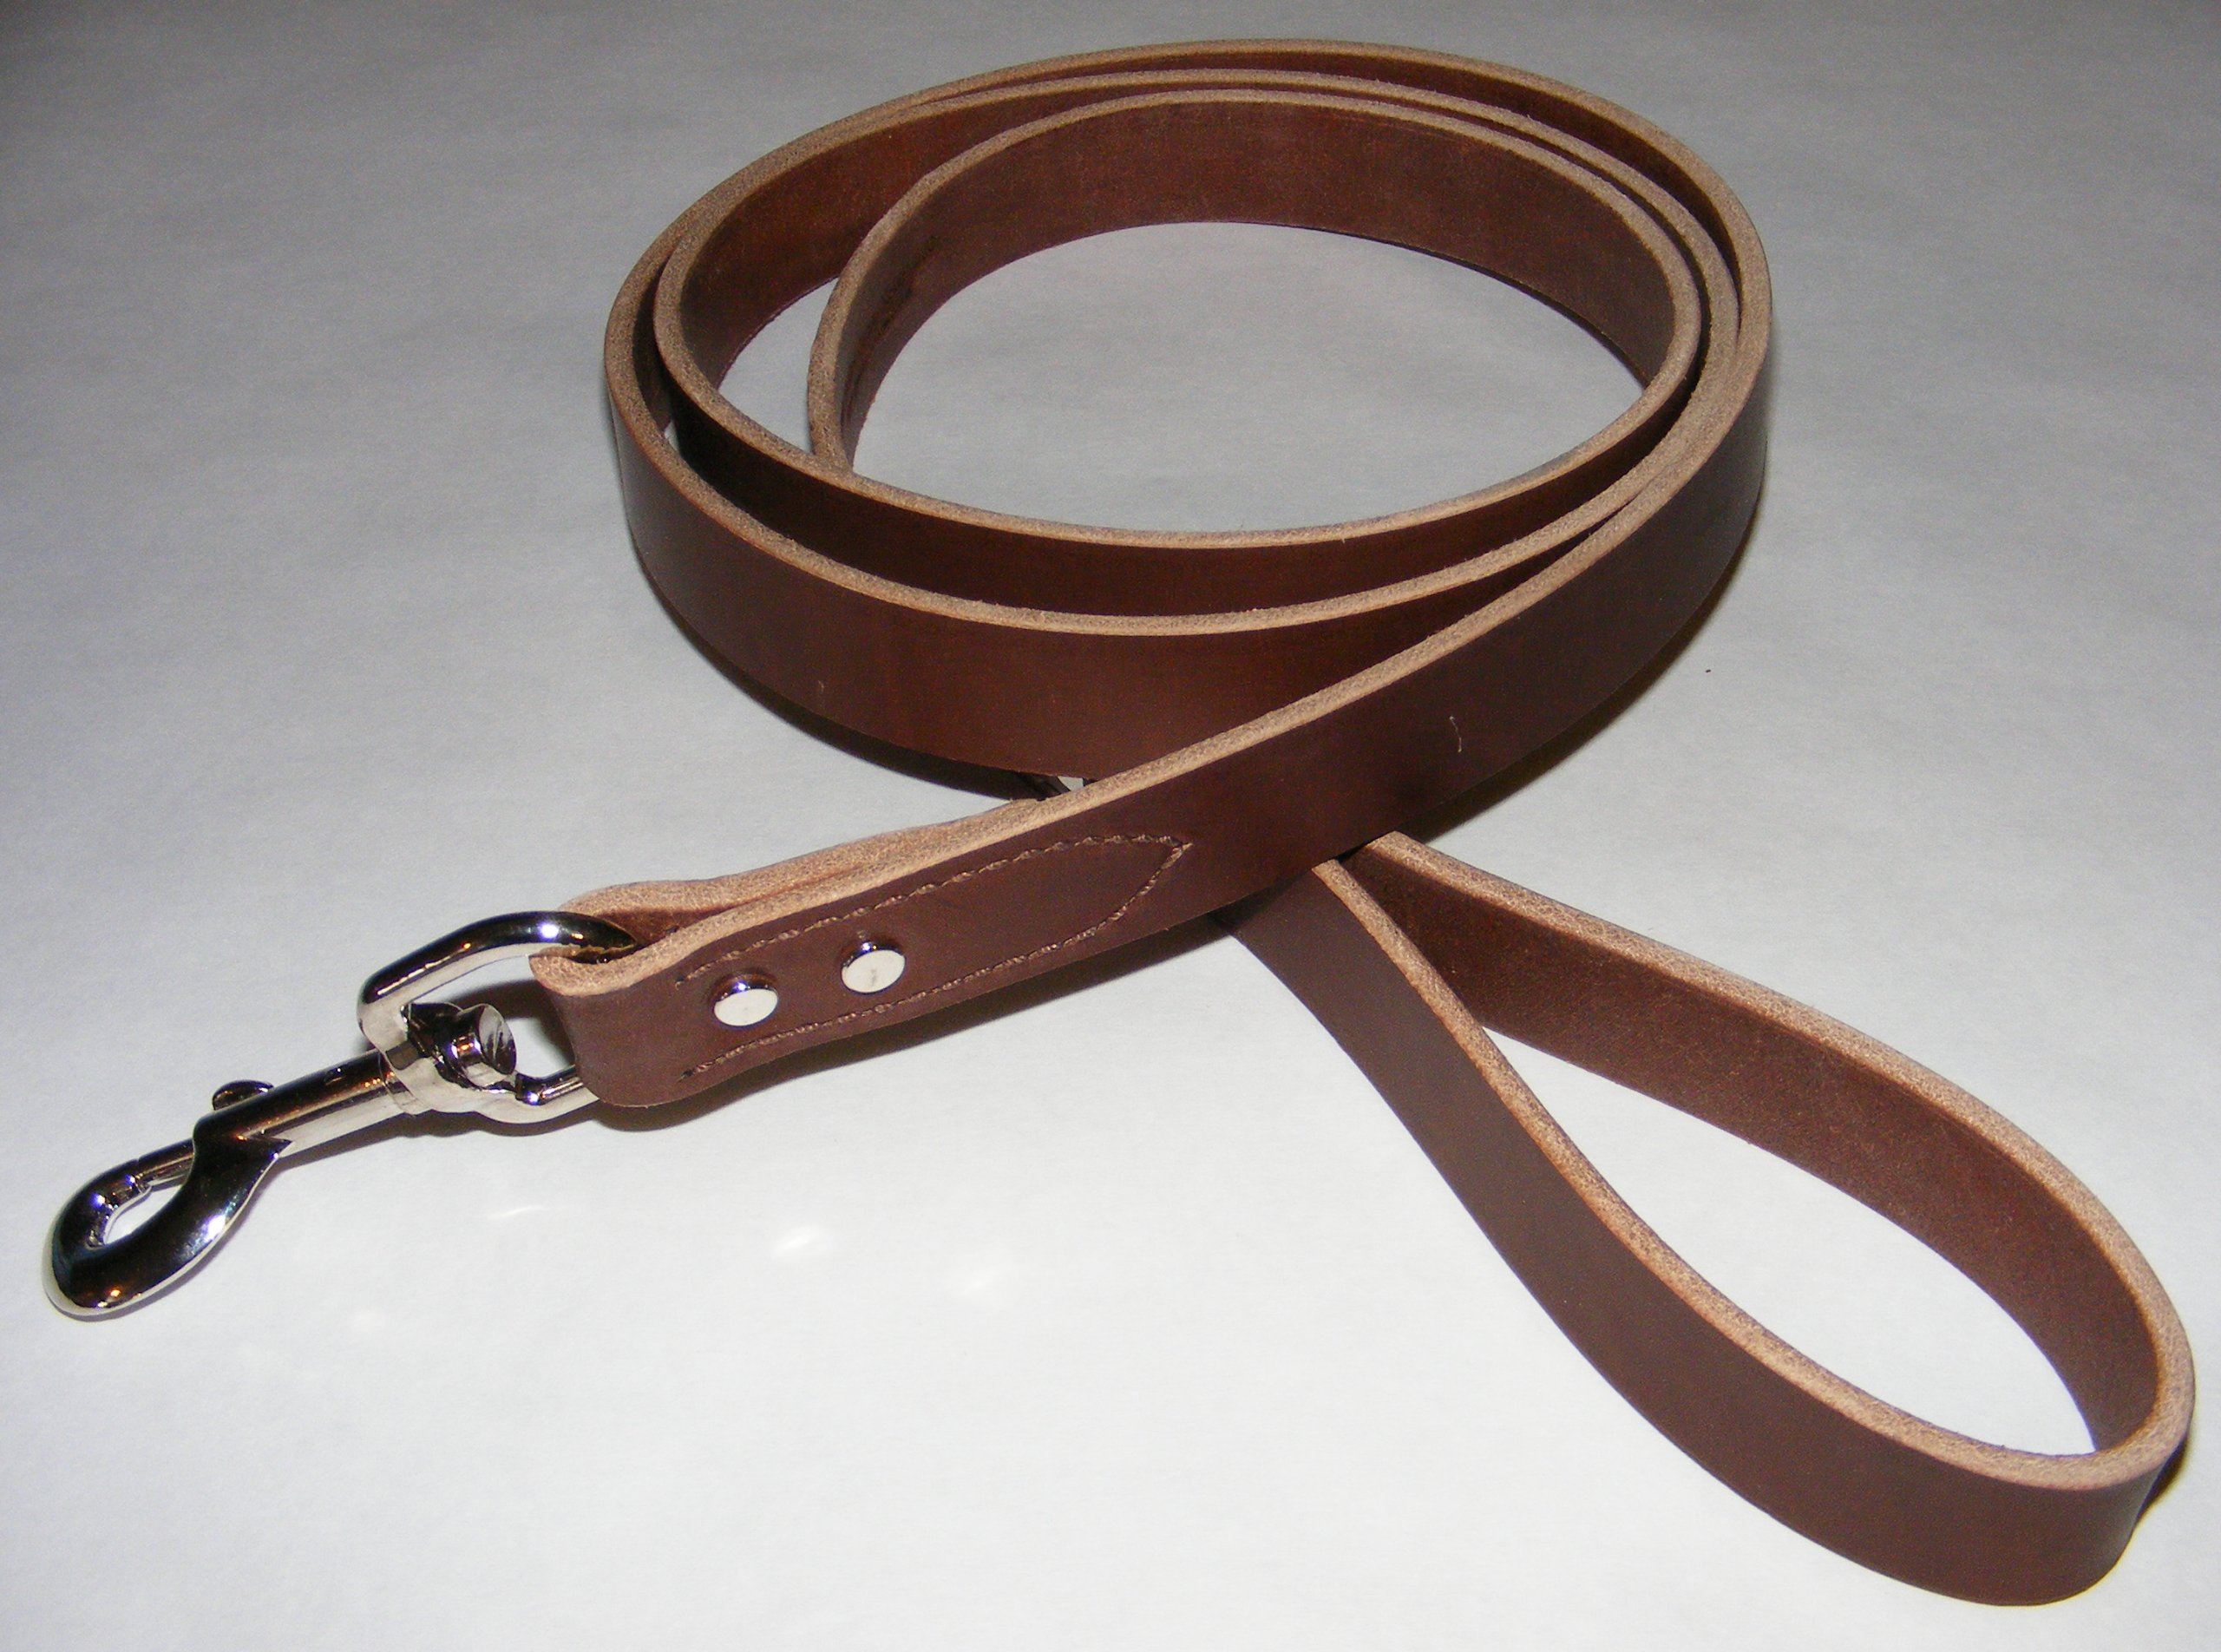 Punk Hollow, Leather Dog Leash, Dog Training Leash, 6ft X 1in Brown and Nickel ~ - Amish Made